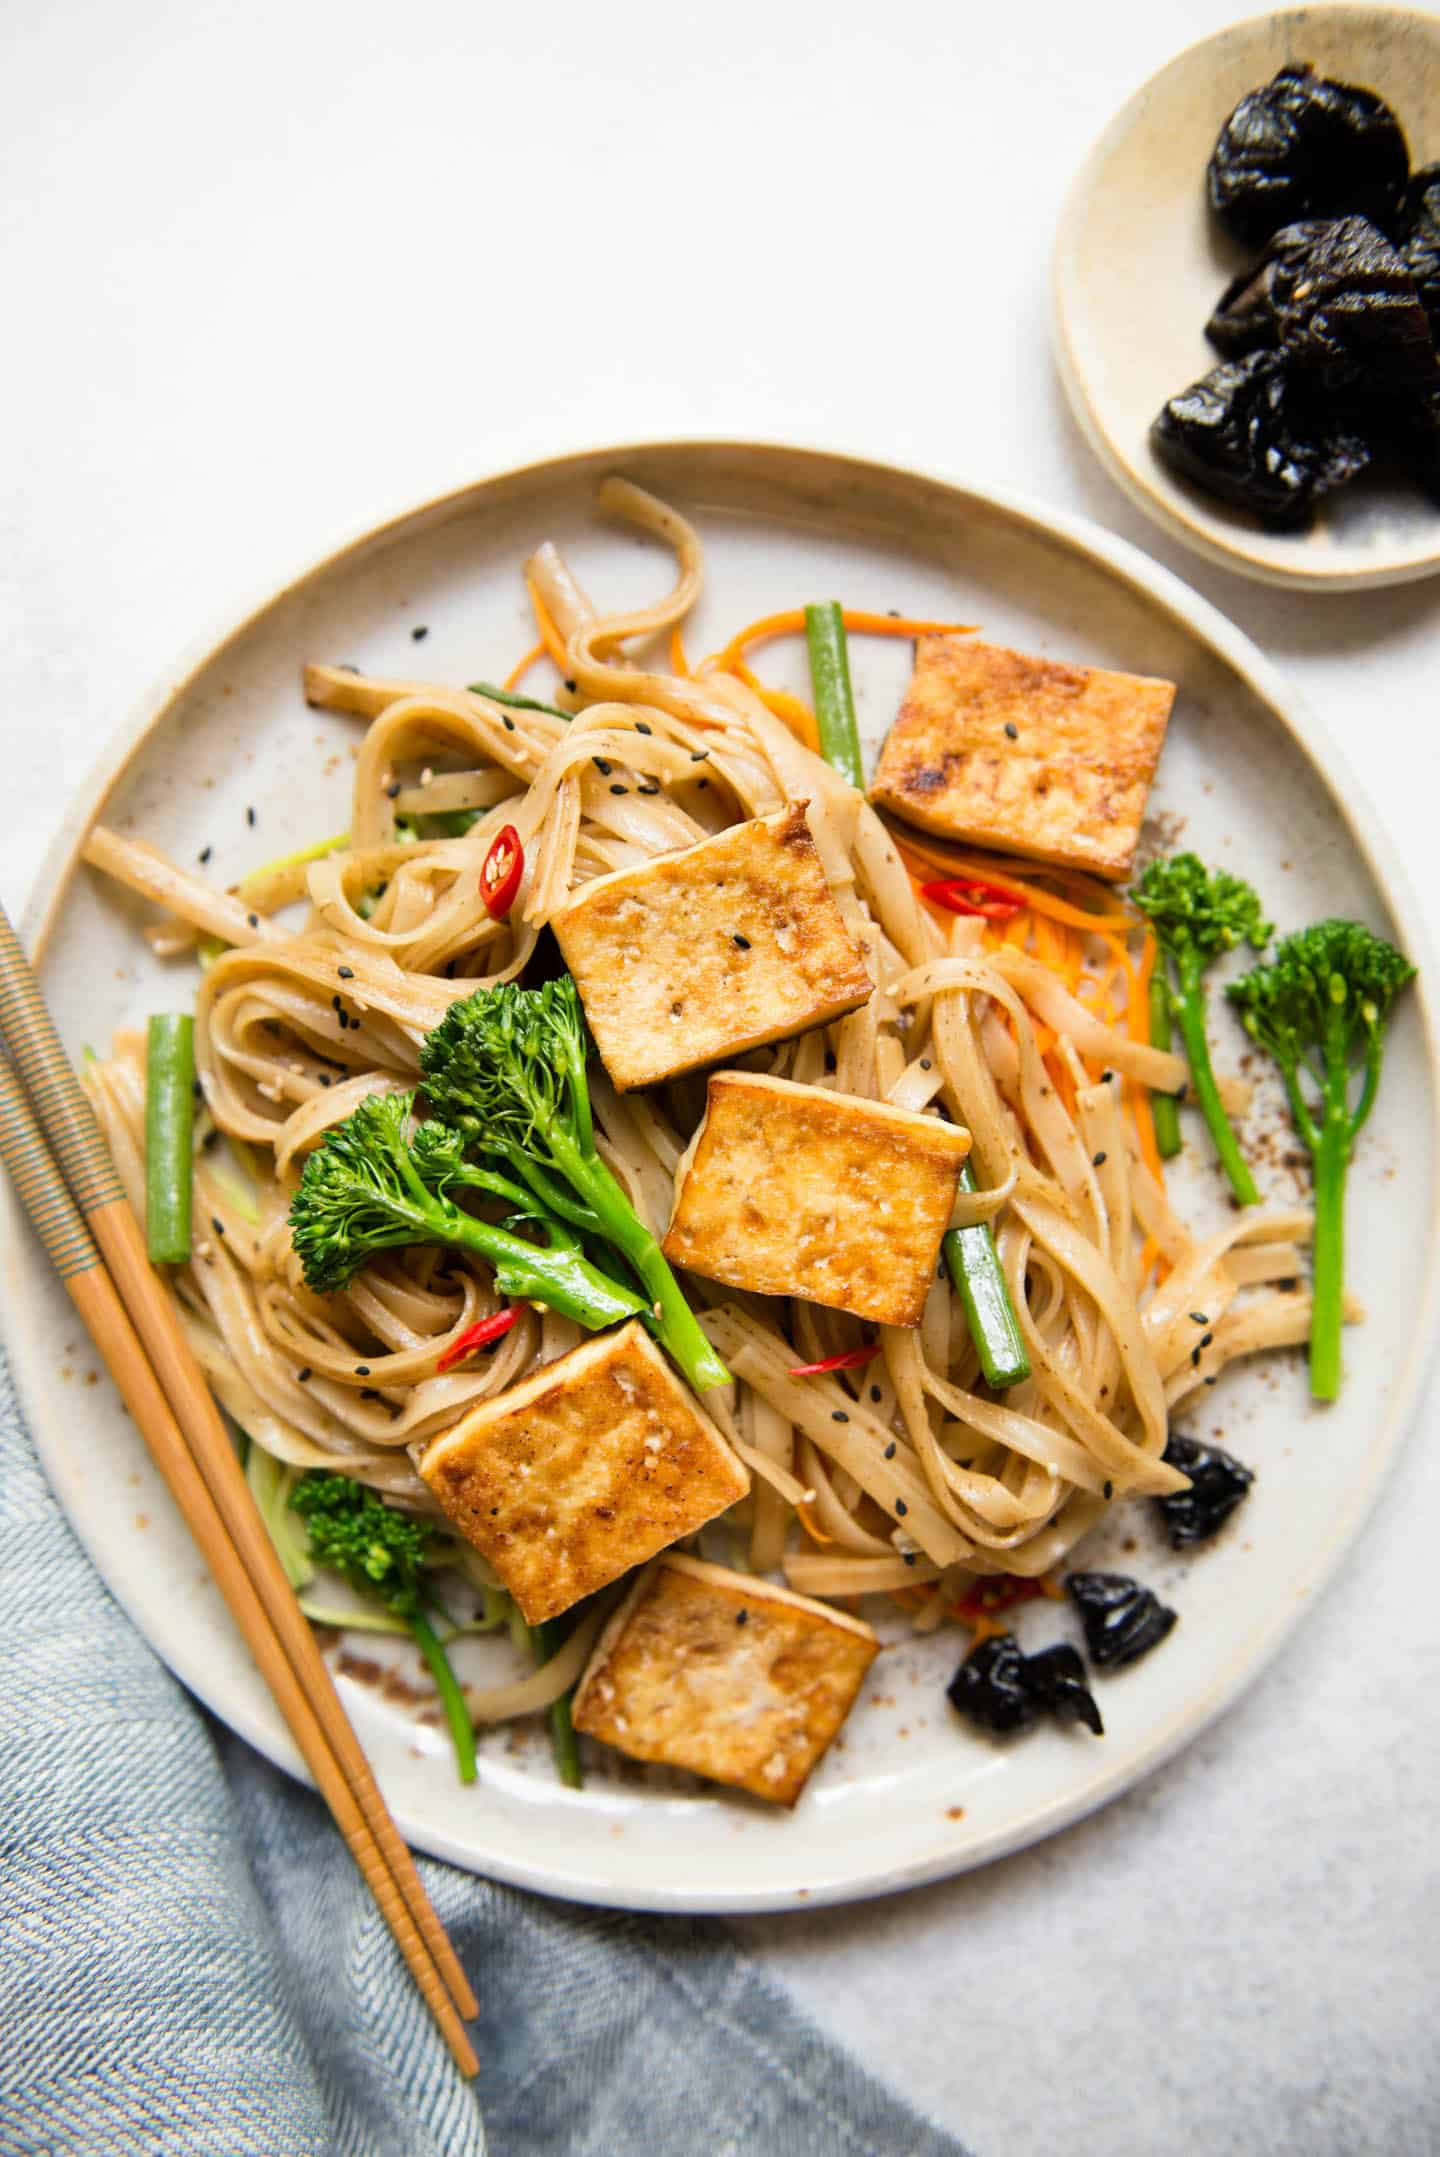 Tofu Stir Fry Noodles with Dried Plum Sauce